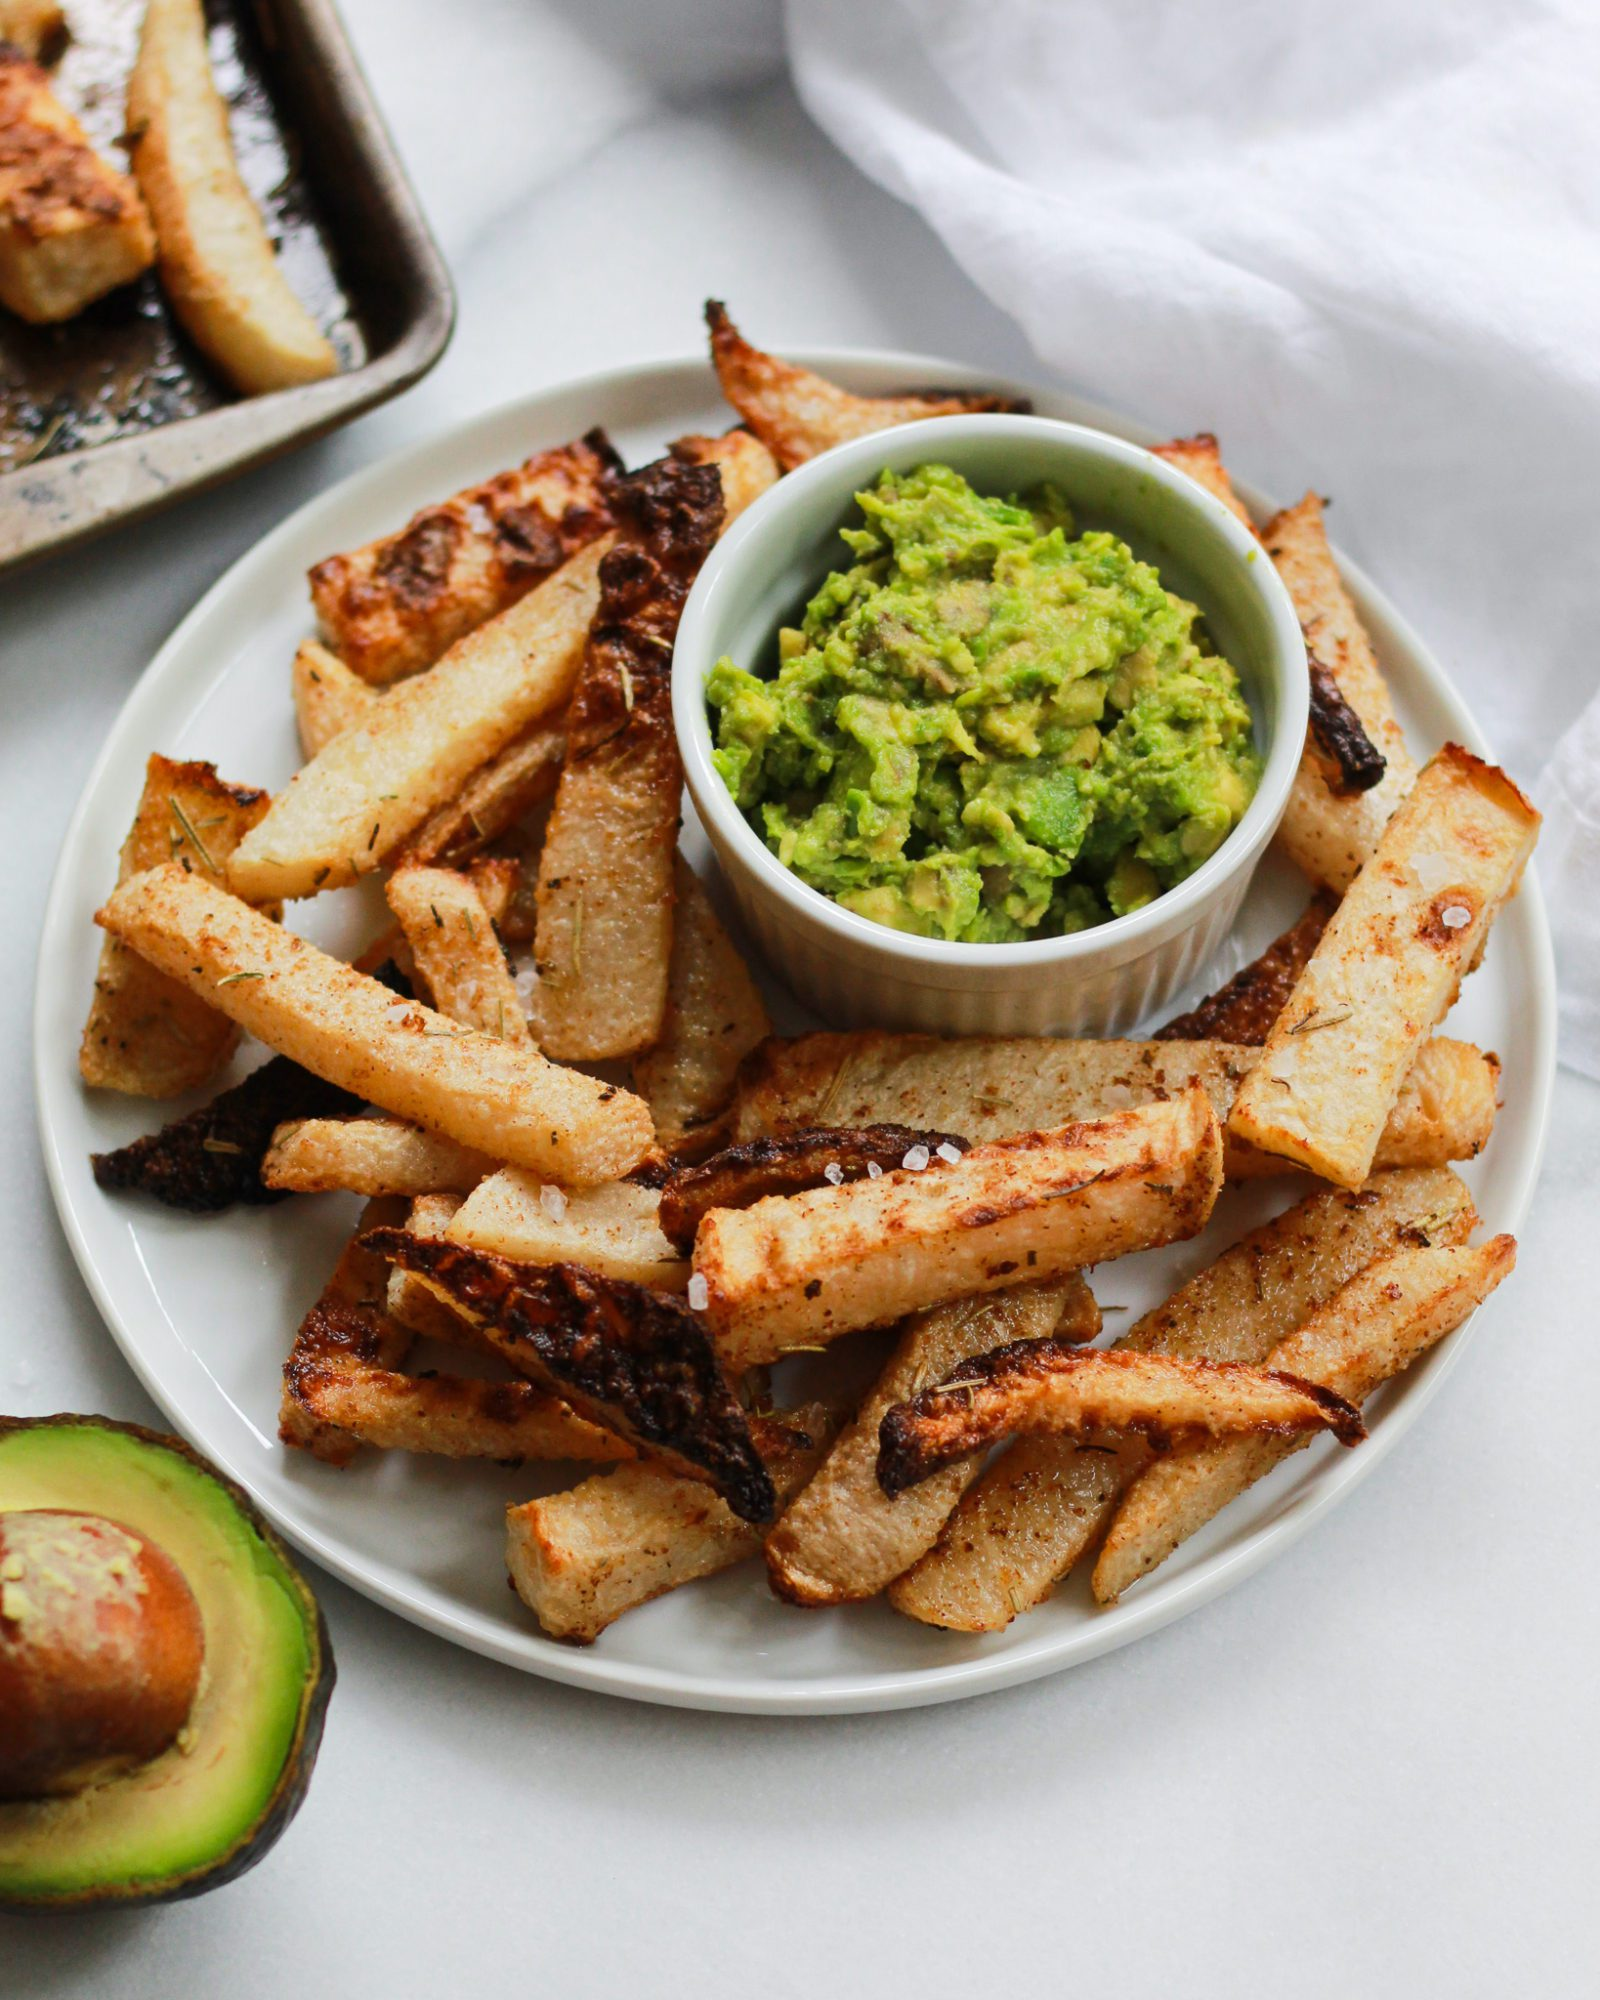 white plate with jicama fries and guacamole